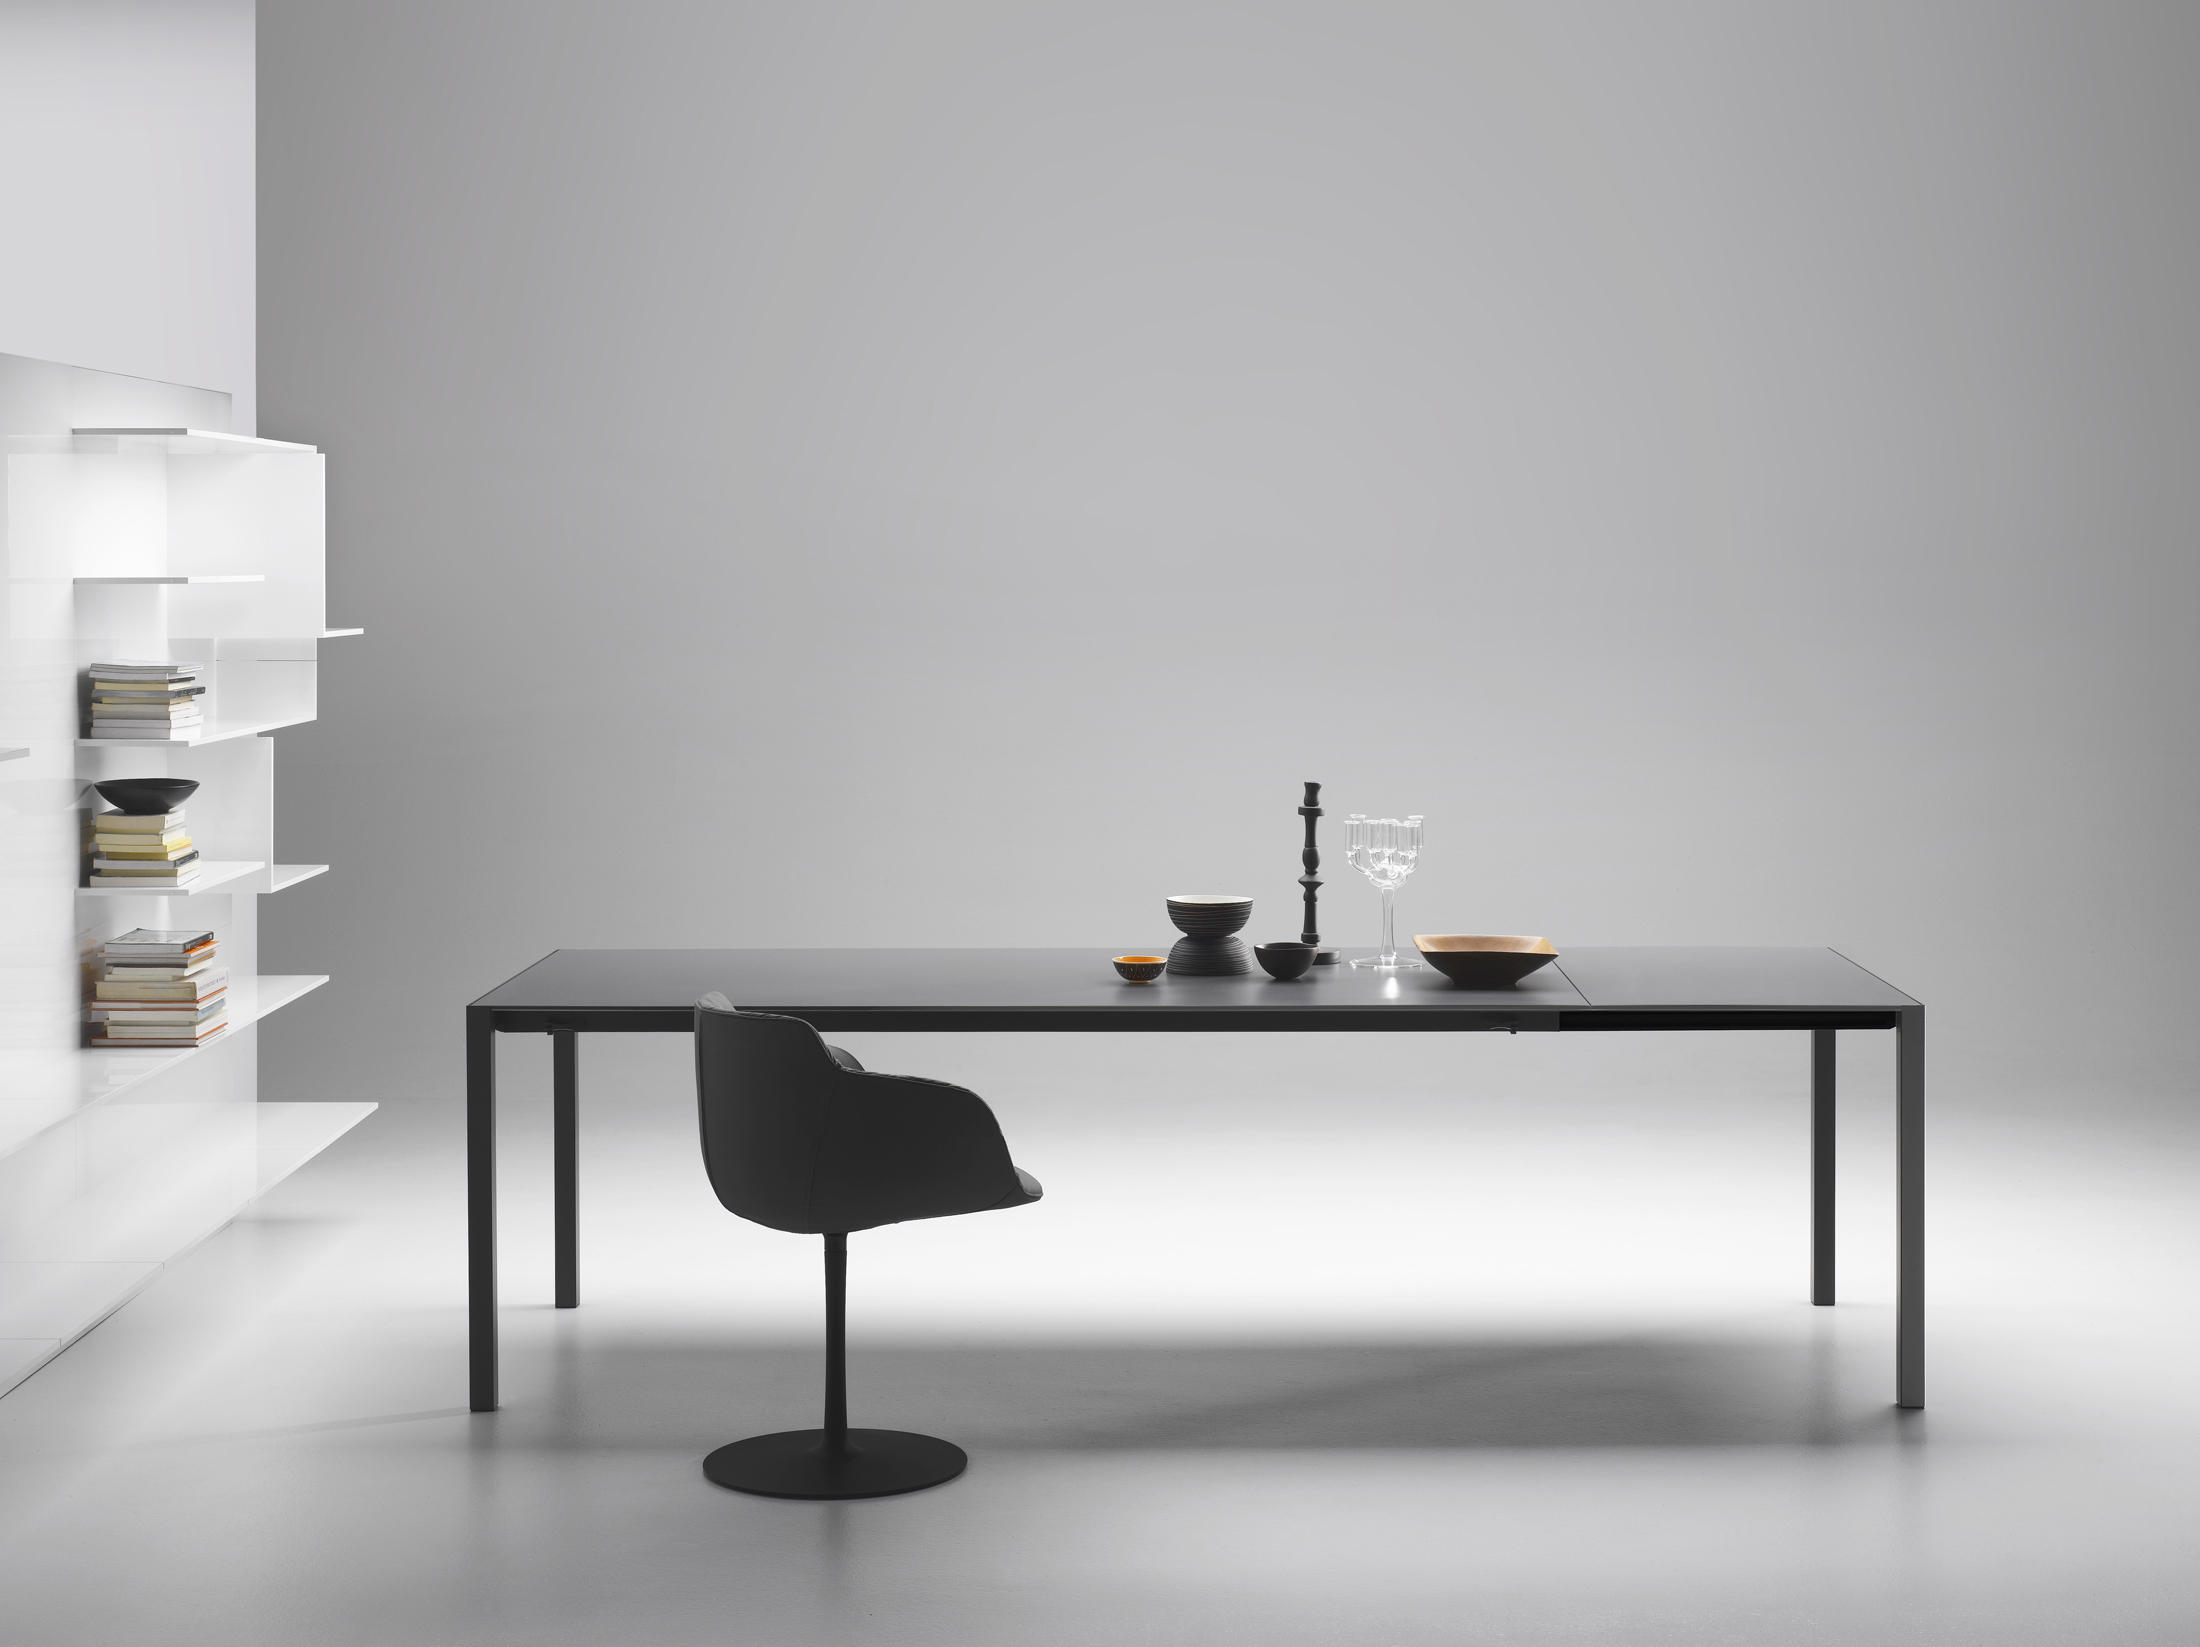 ext table besprechungstische von mdf italia architonic. Black Bedroom Furniture Sets. Home Design Ideas